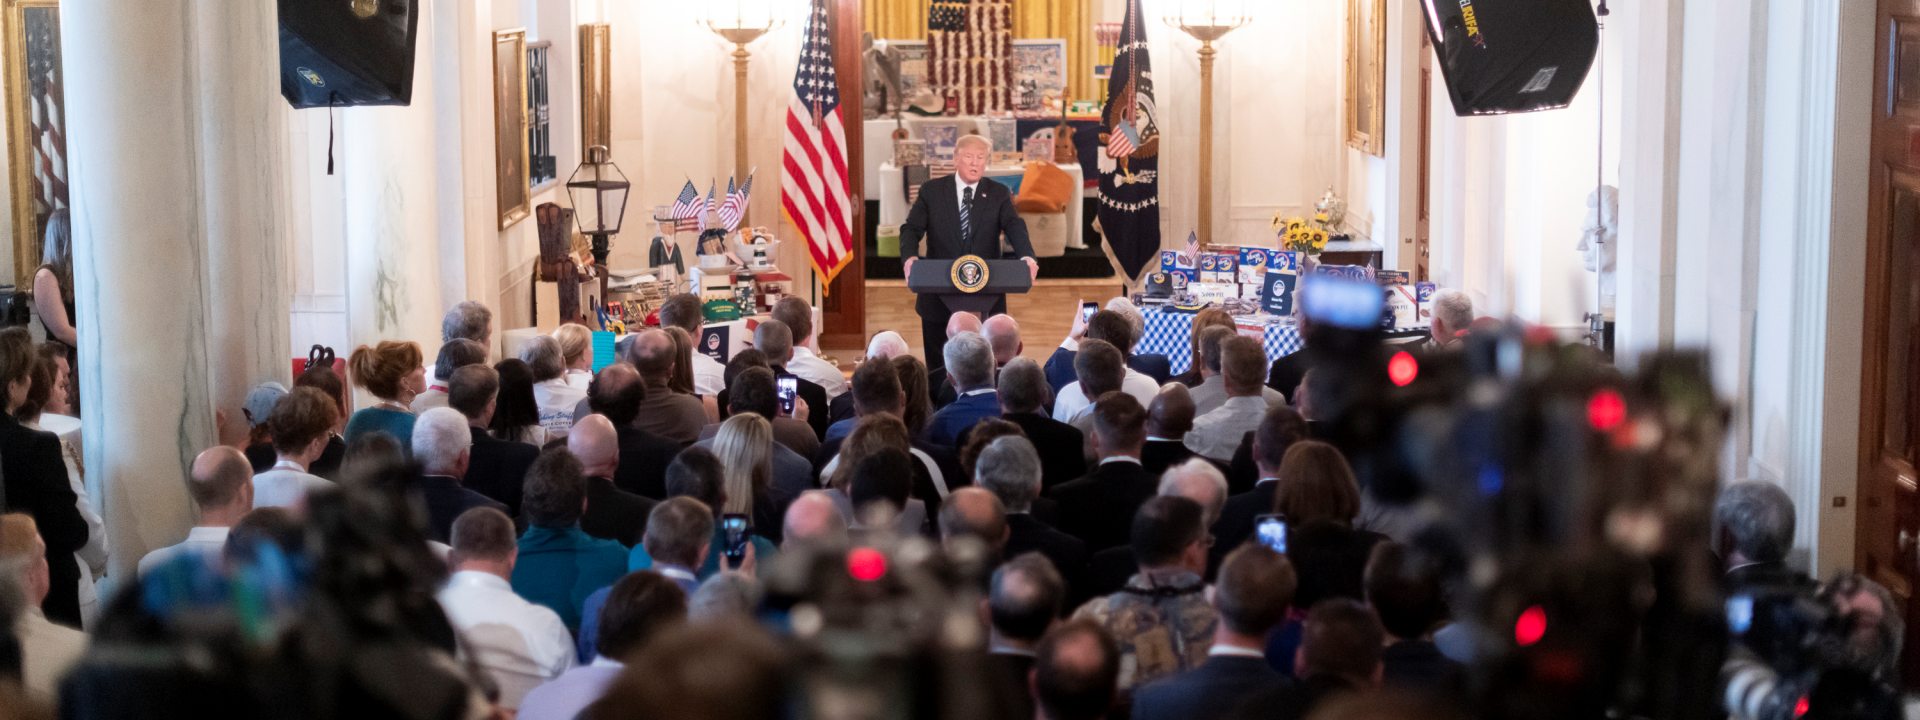 American Manufacturers Featured at White House Event